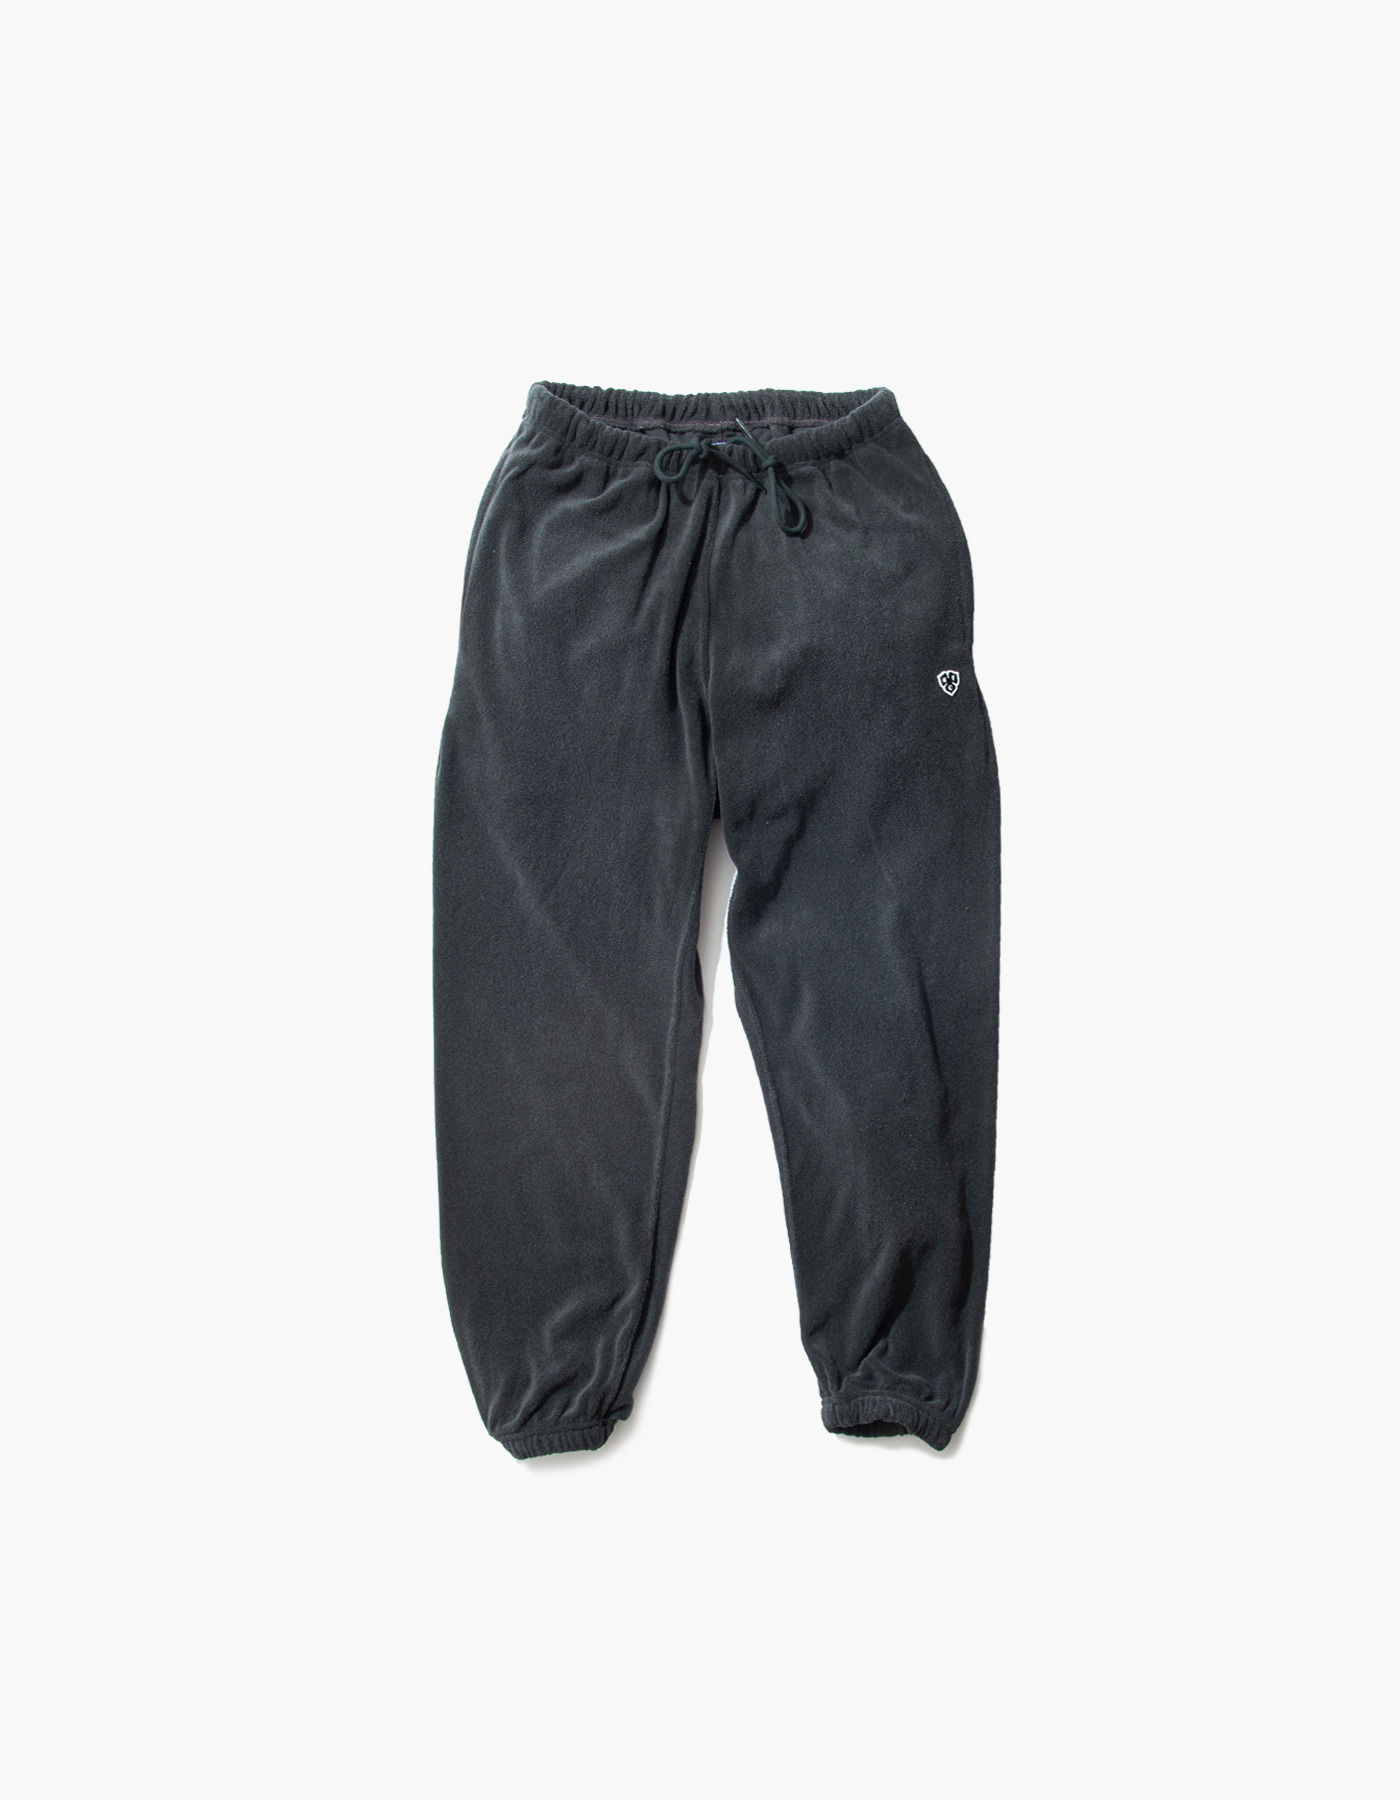 HFC CREST TOWEL JOGGER PANTS / CHARCOAL